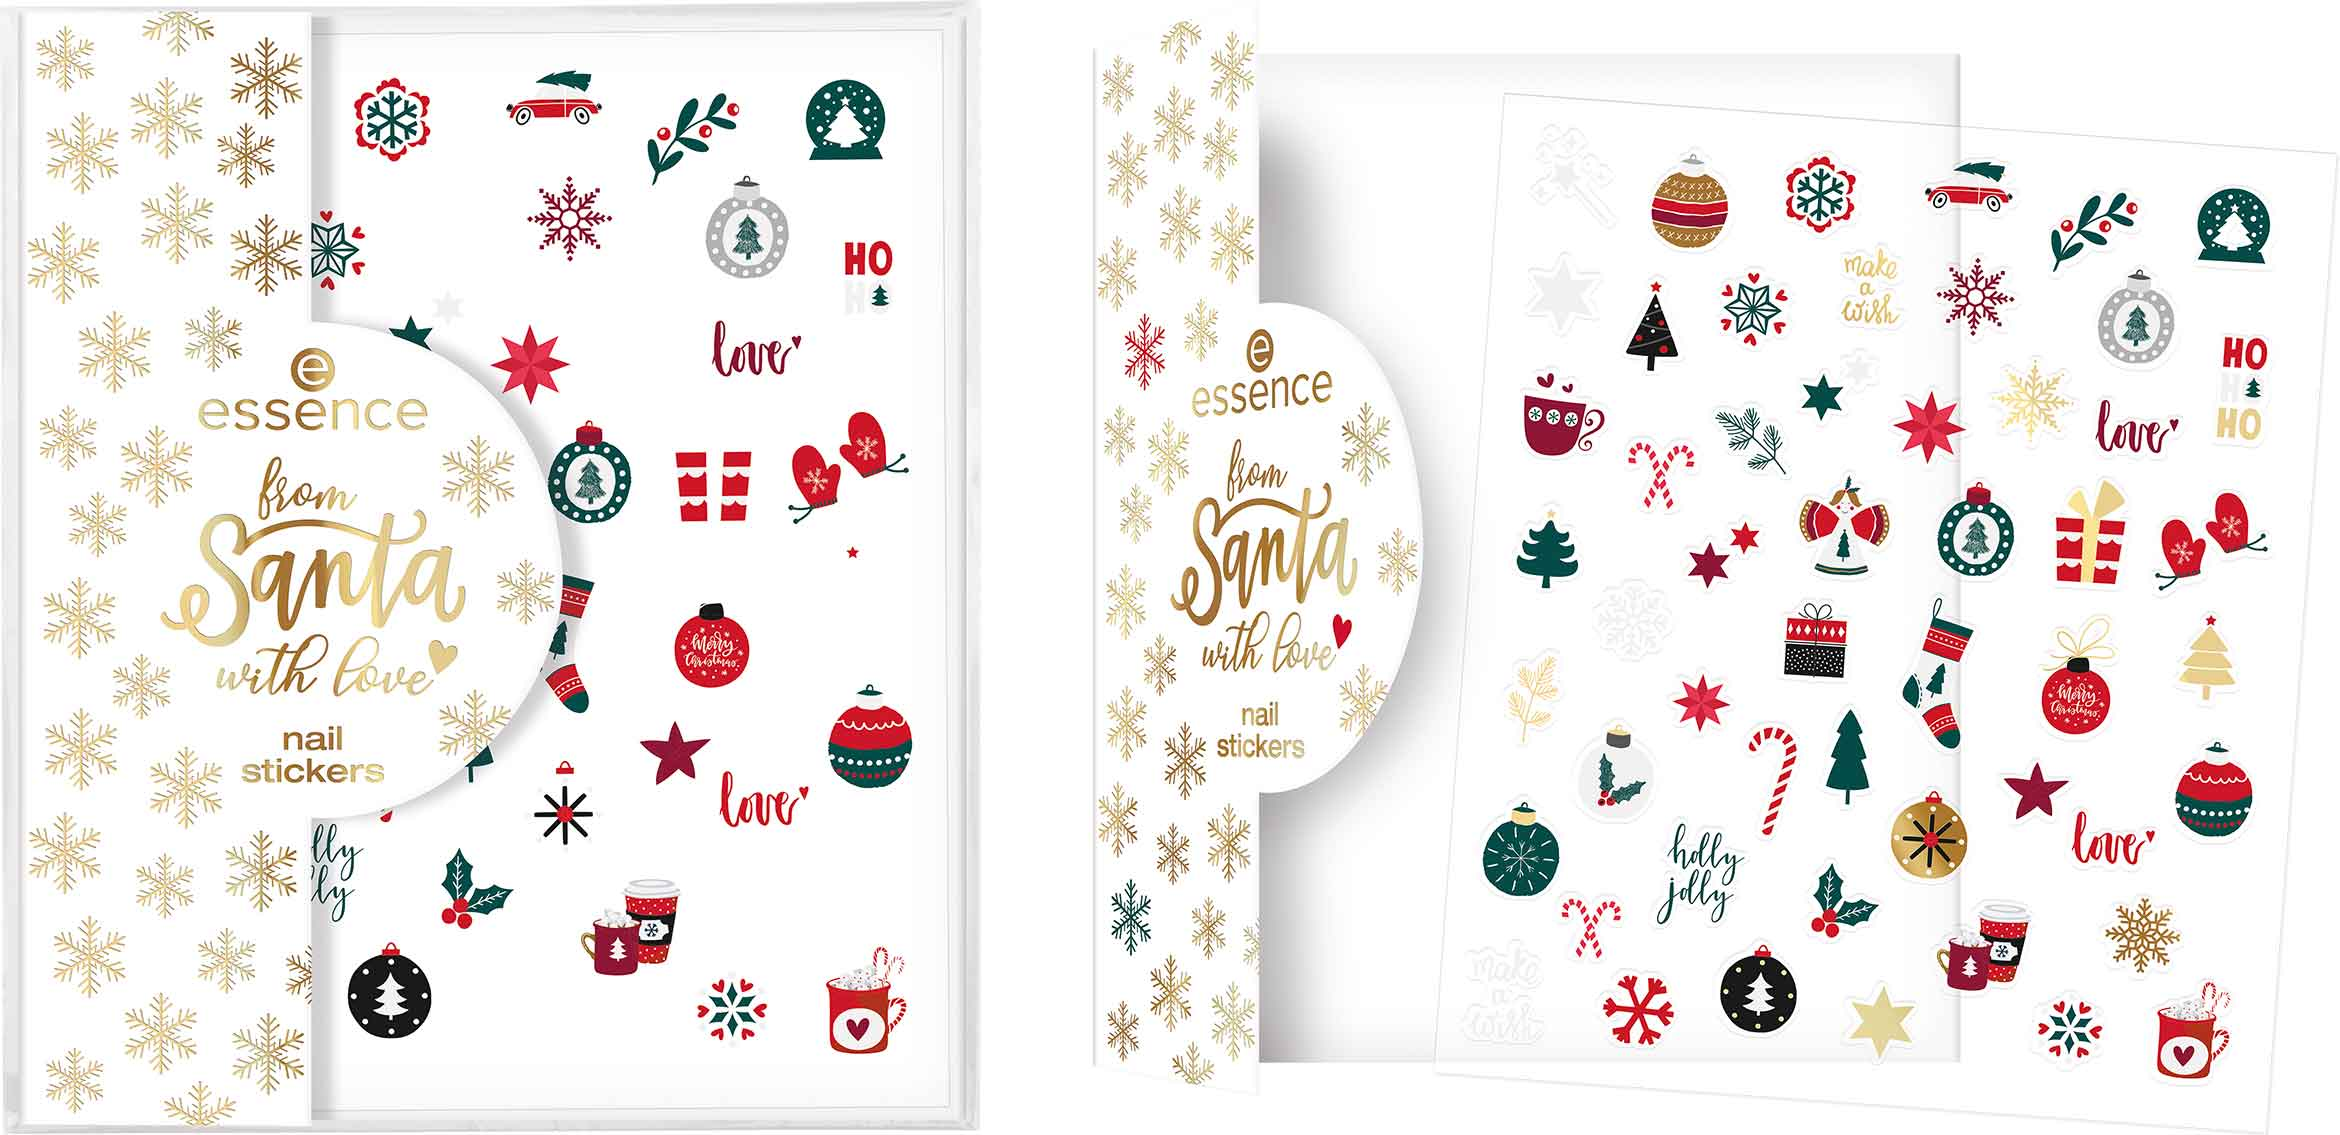 essence-from-santa-with-love-nail-stickers